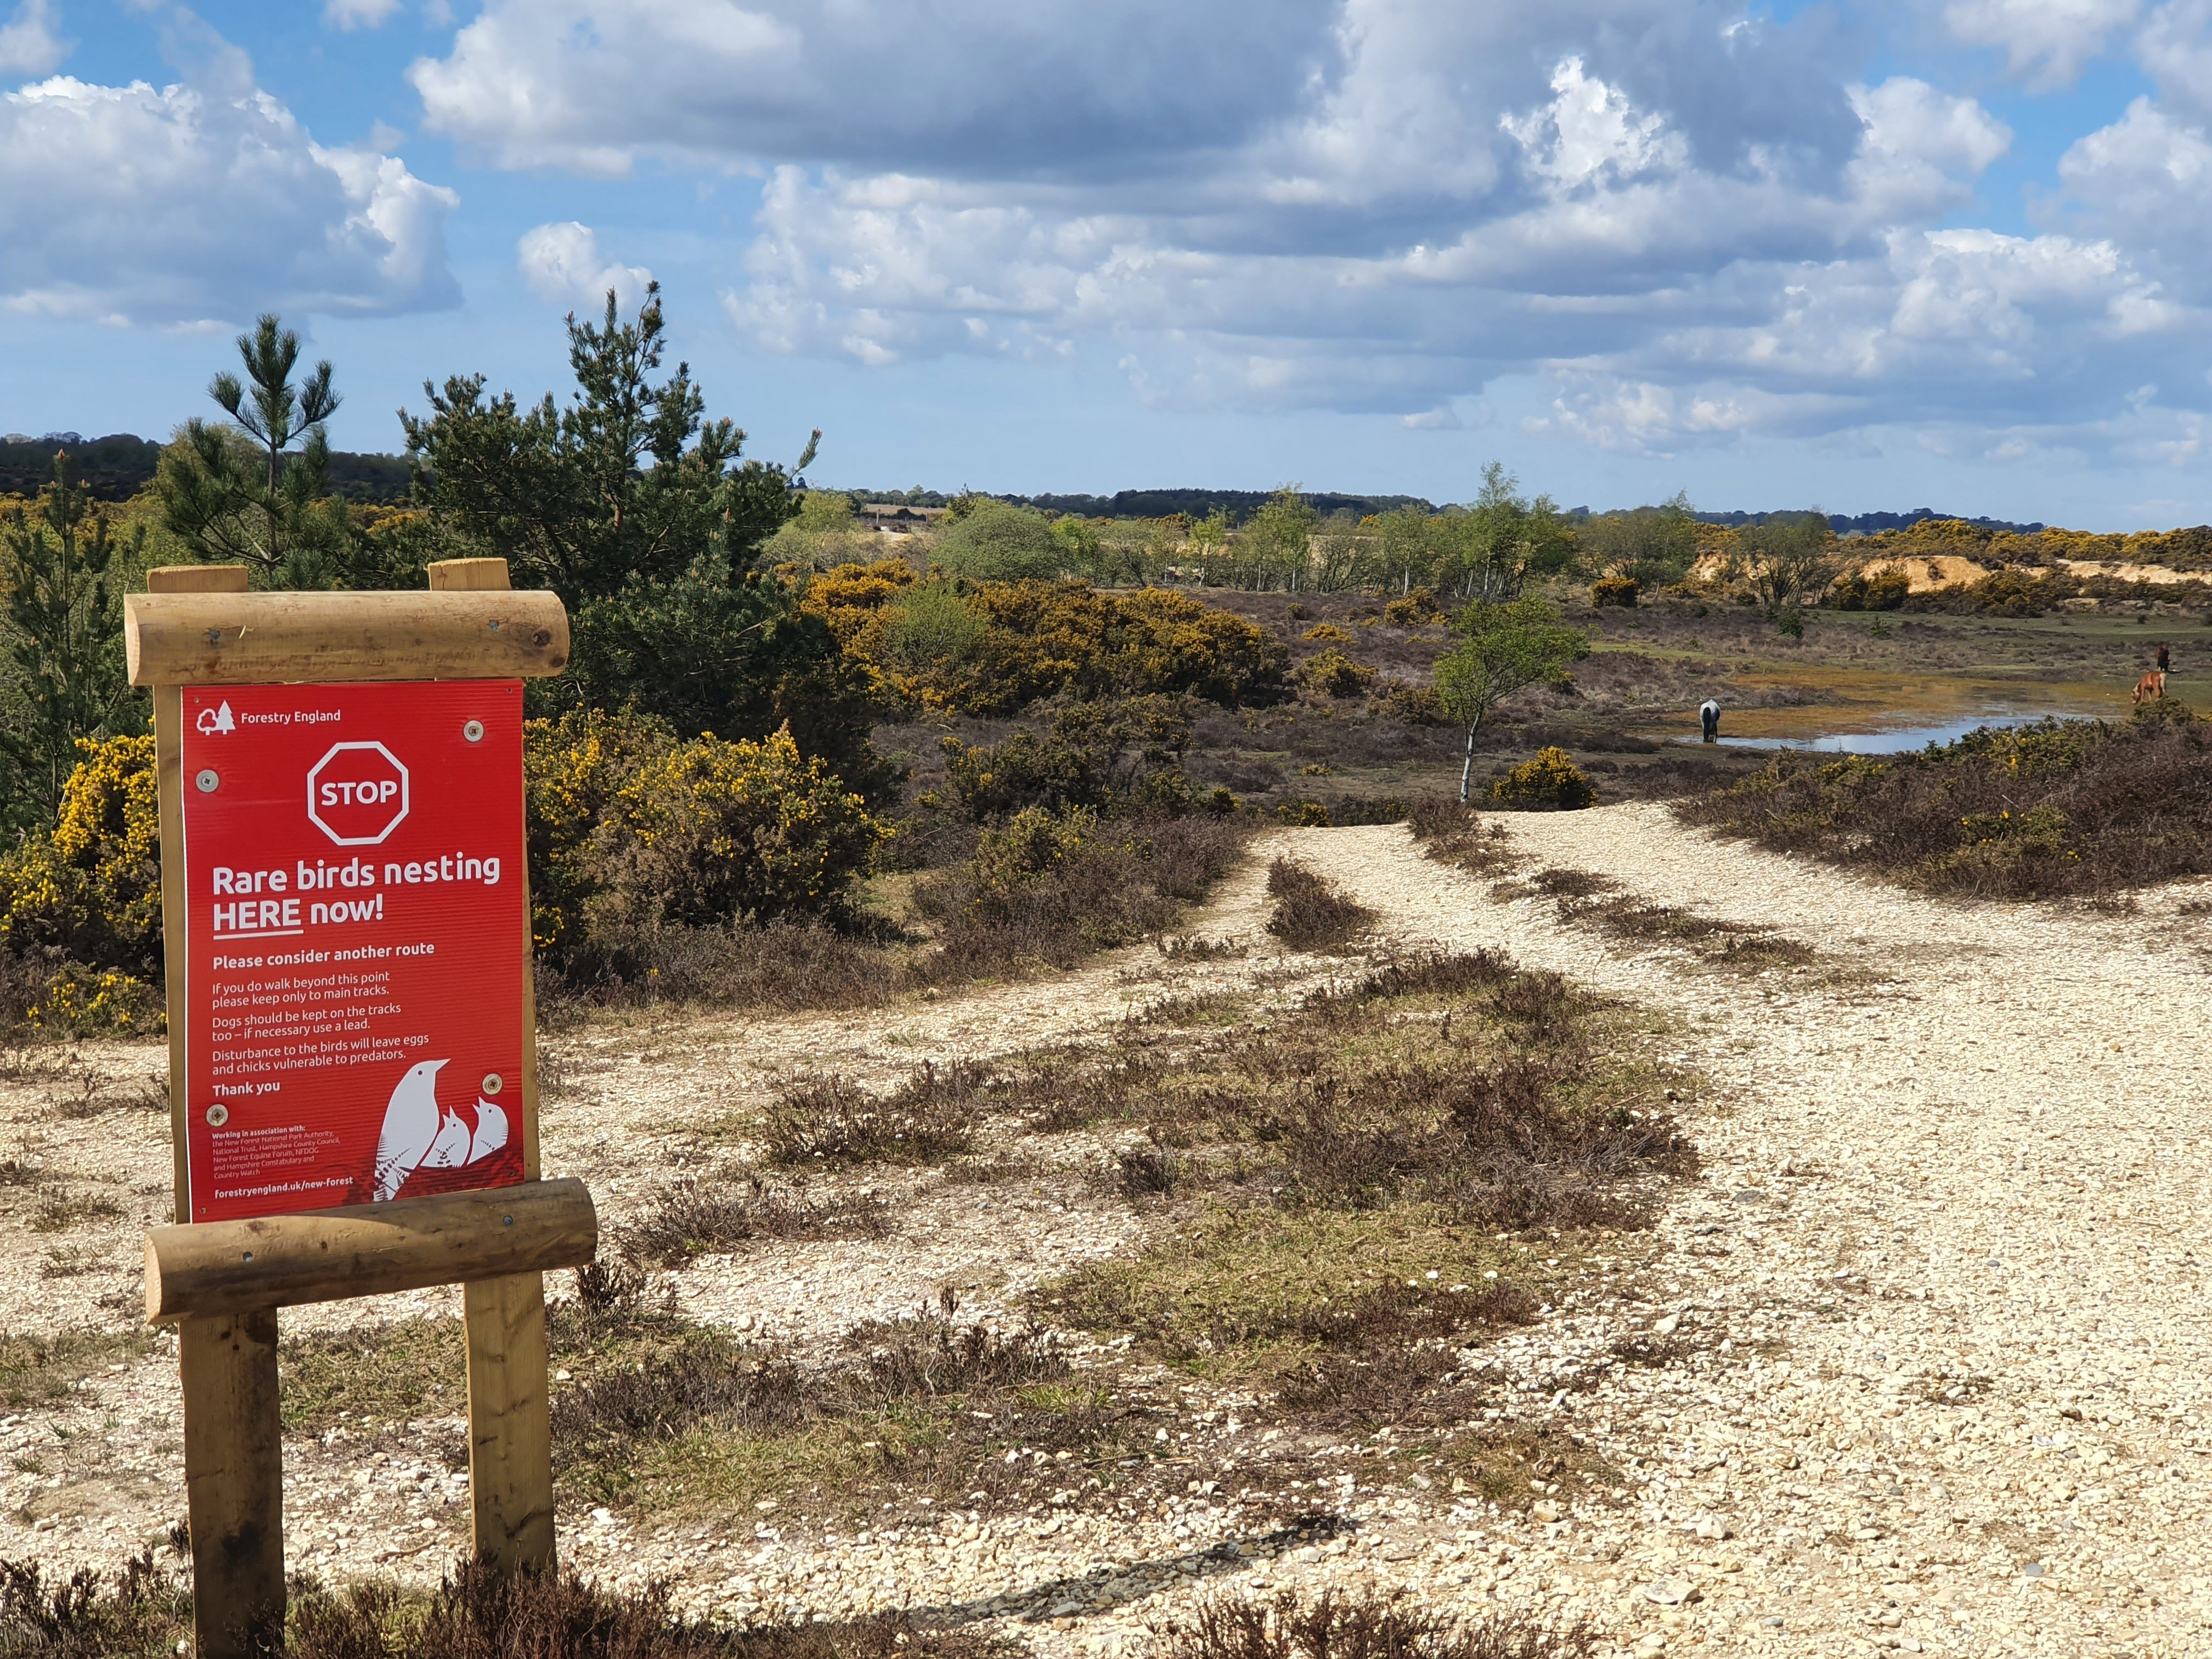 Ground nesting bird patrol view with the red signs